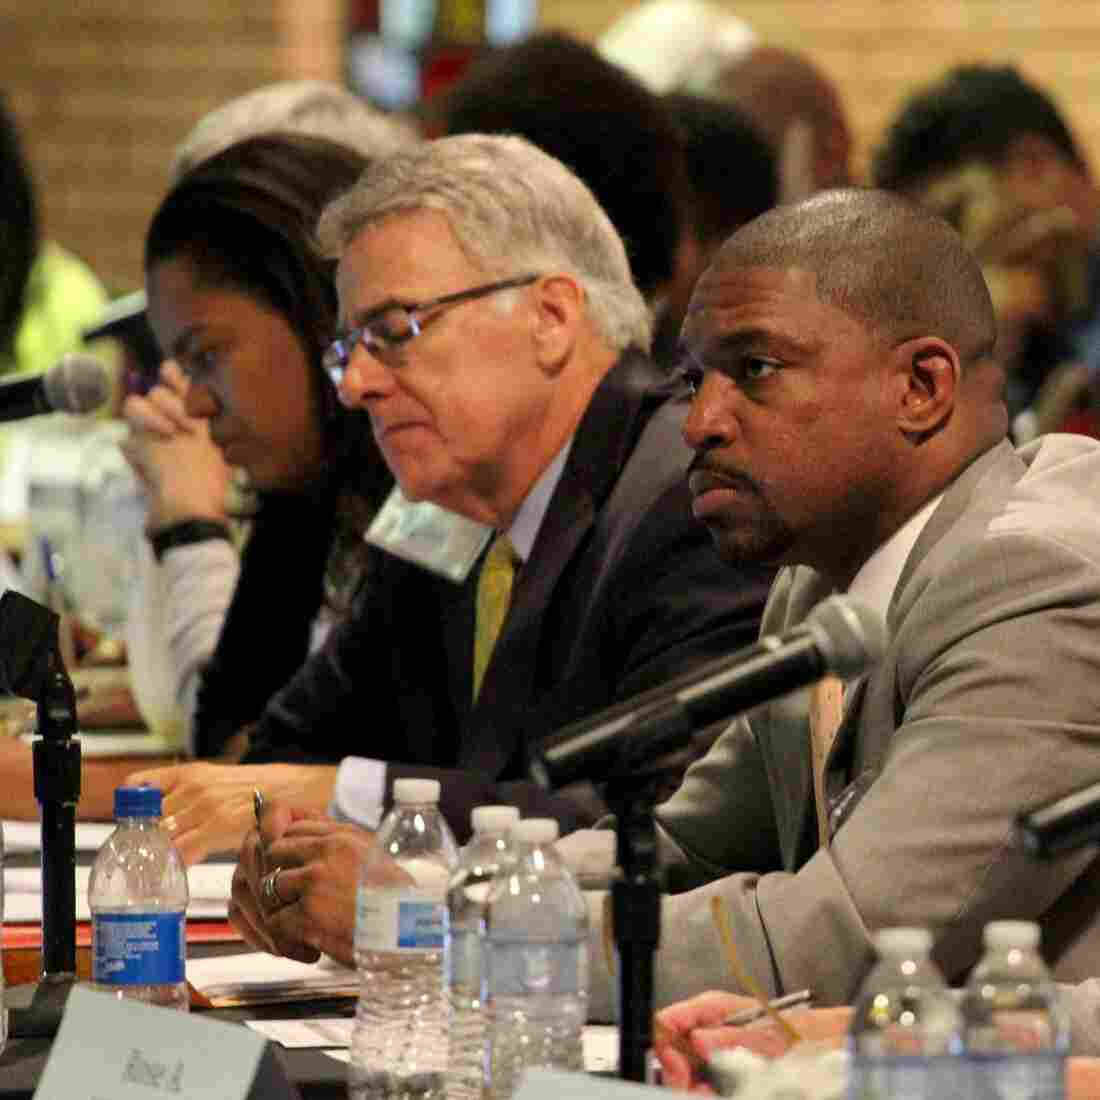 Ferguson Commission Shines Light On Racially Divided St. Louis